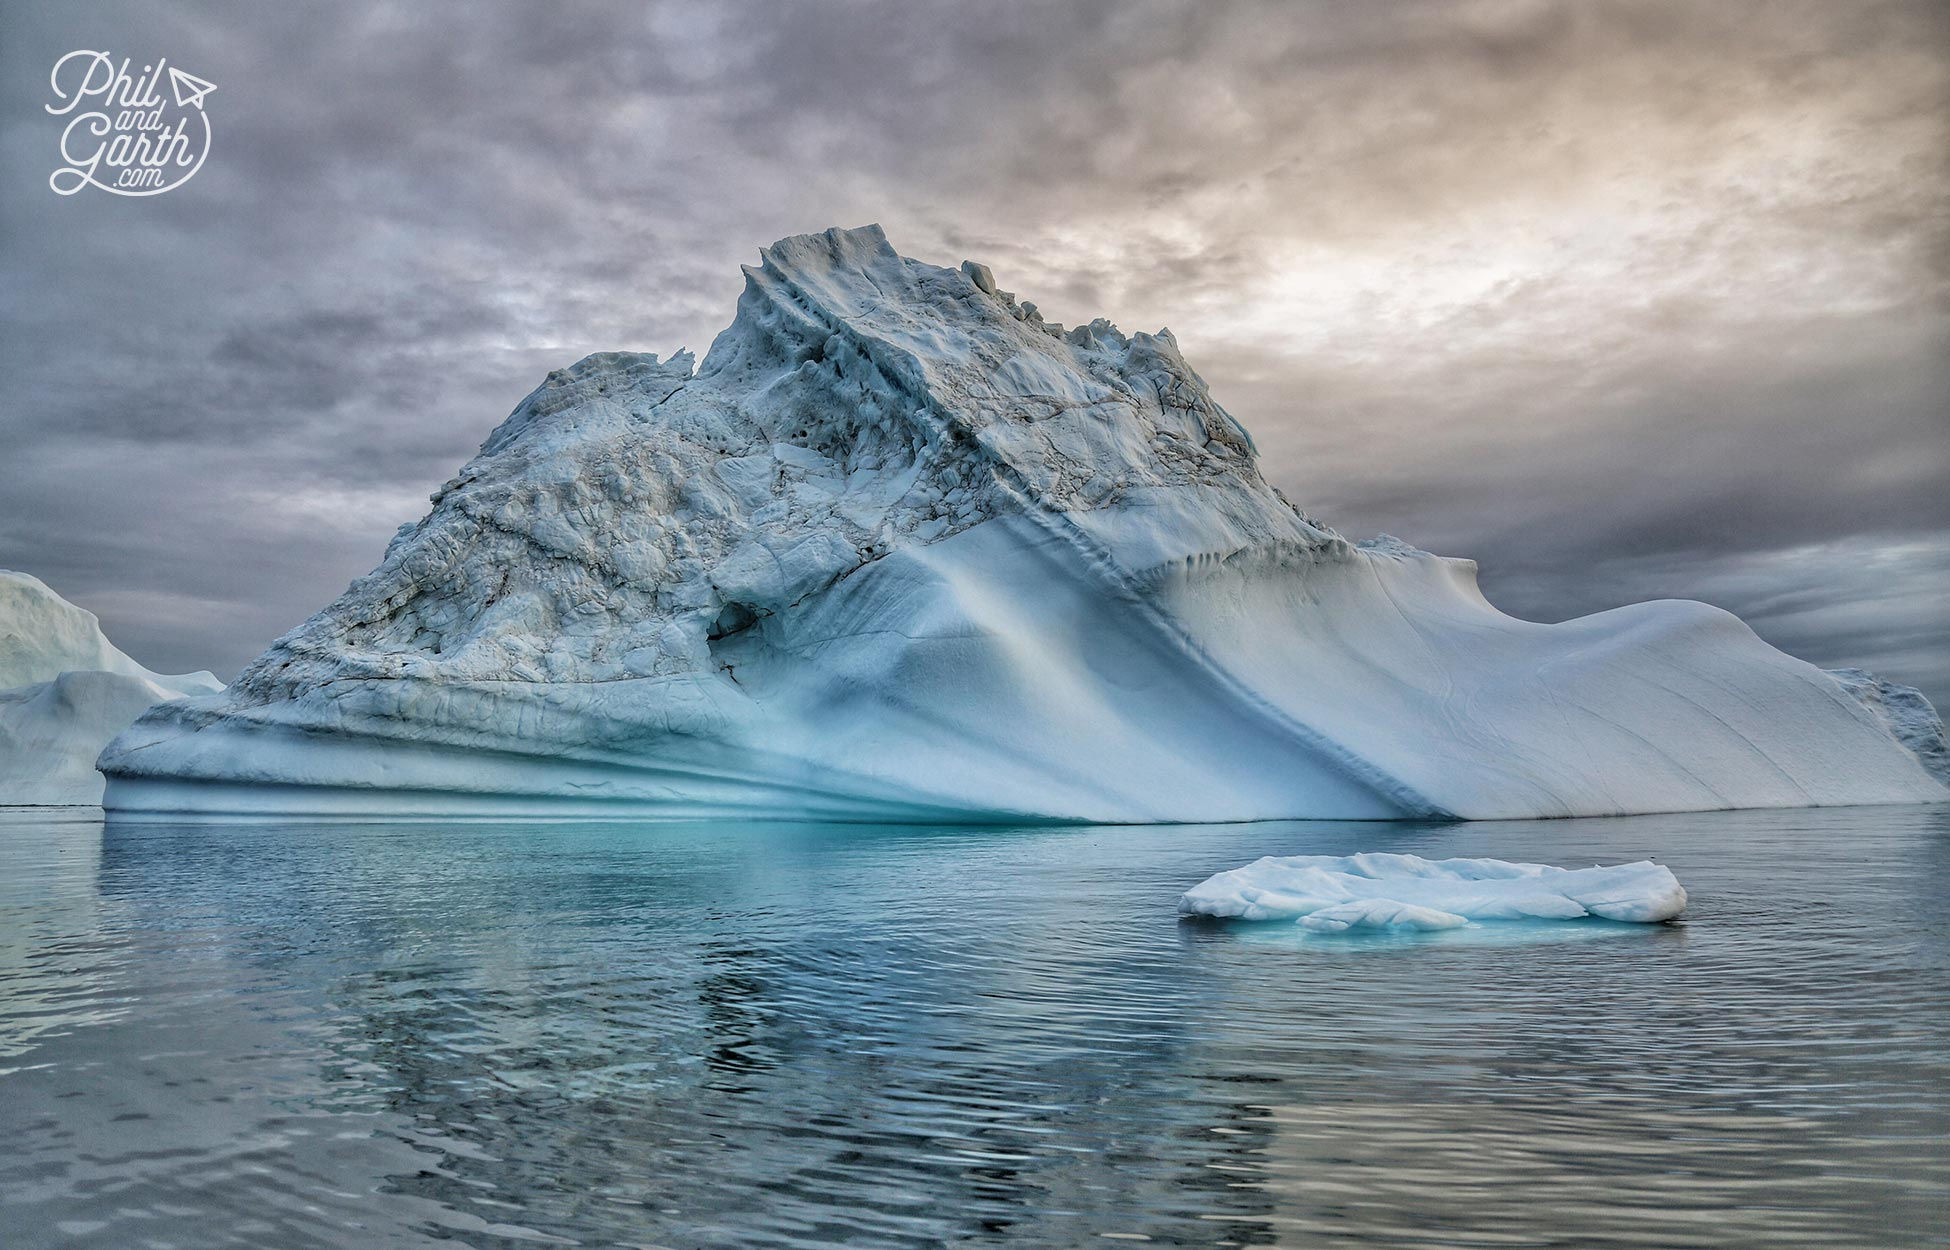 Did you know that Icebergs regularly flip over?